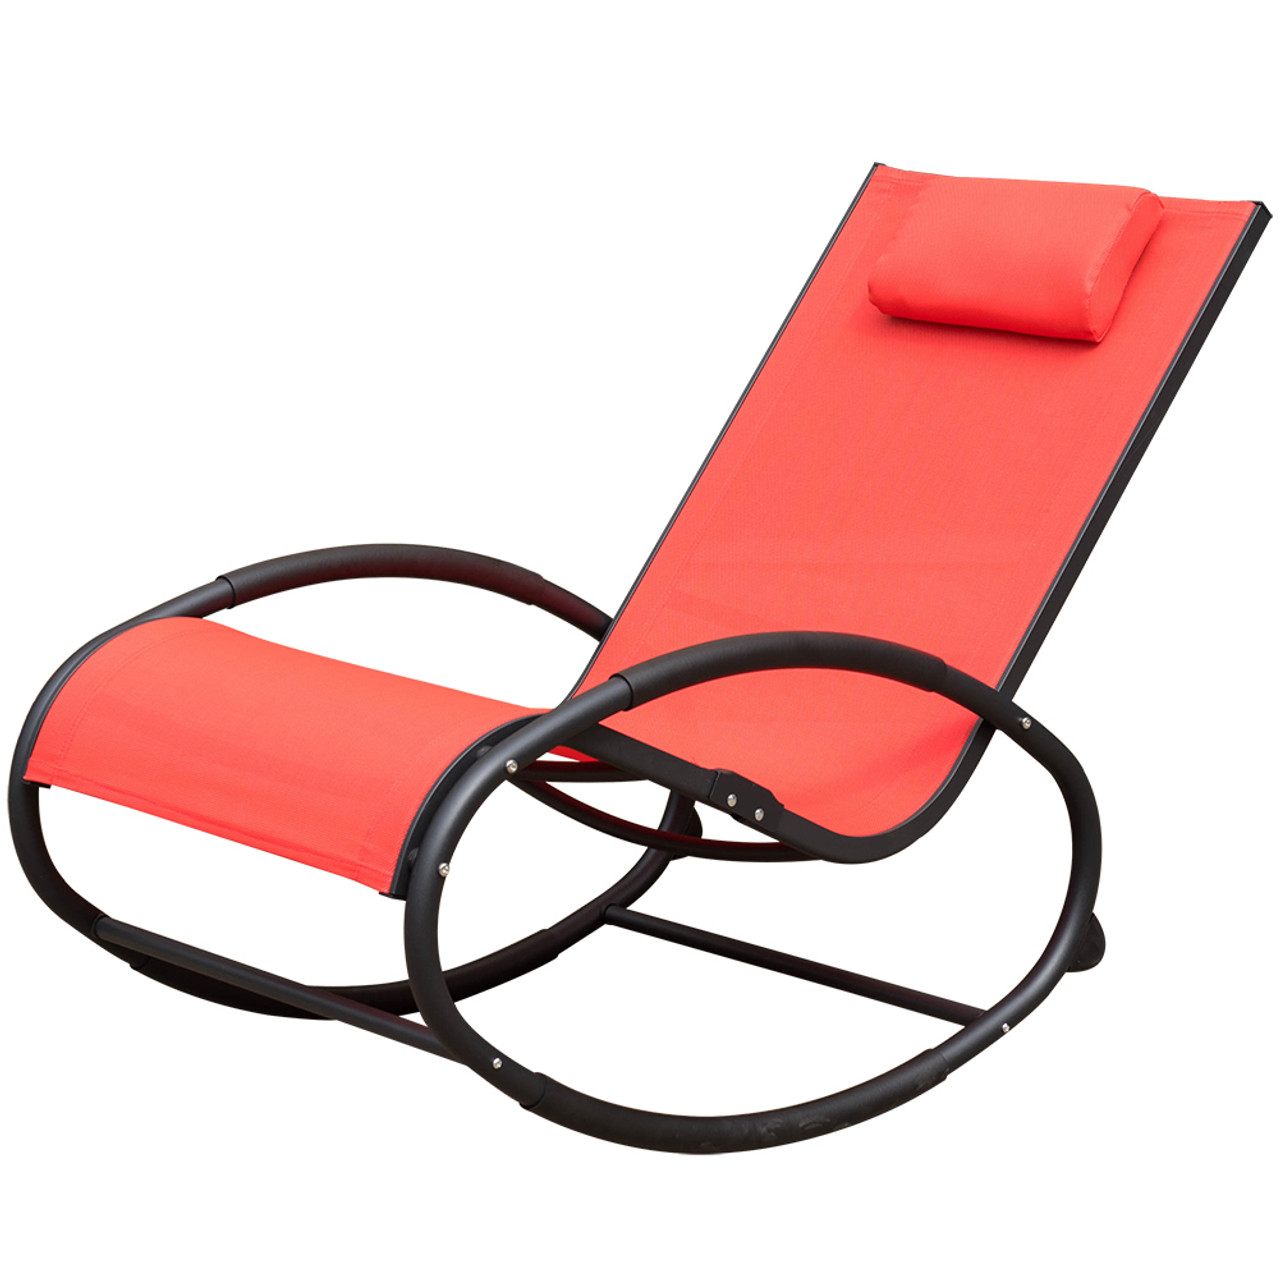 Charming Patio Aluminum Zero Gravity Chair Orbital Rocking Lounge Chair With  Pillow,Capacity 250 Pounds,Red